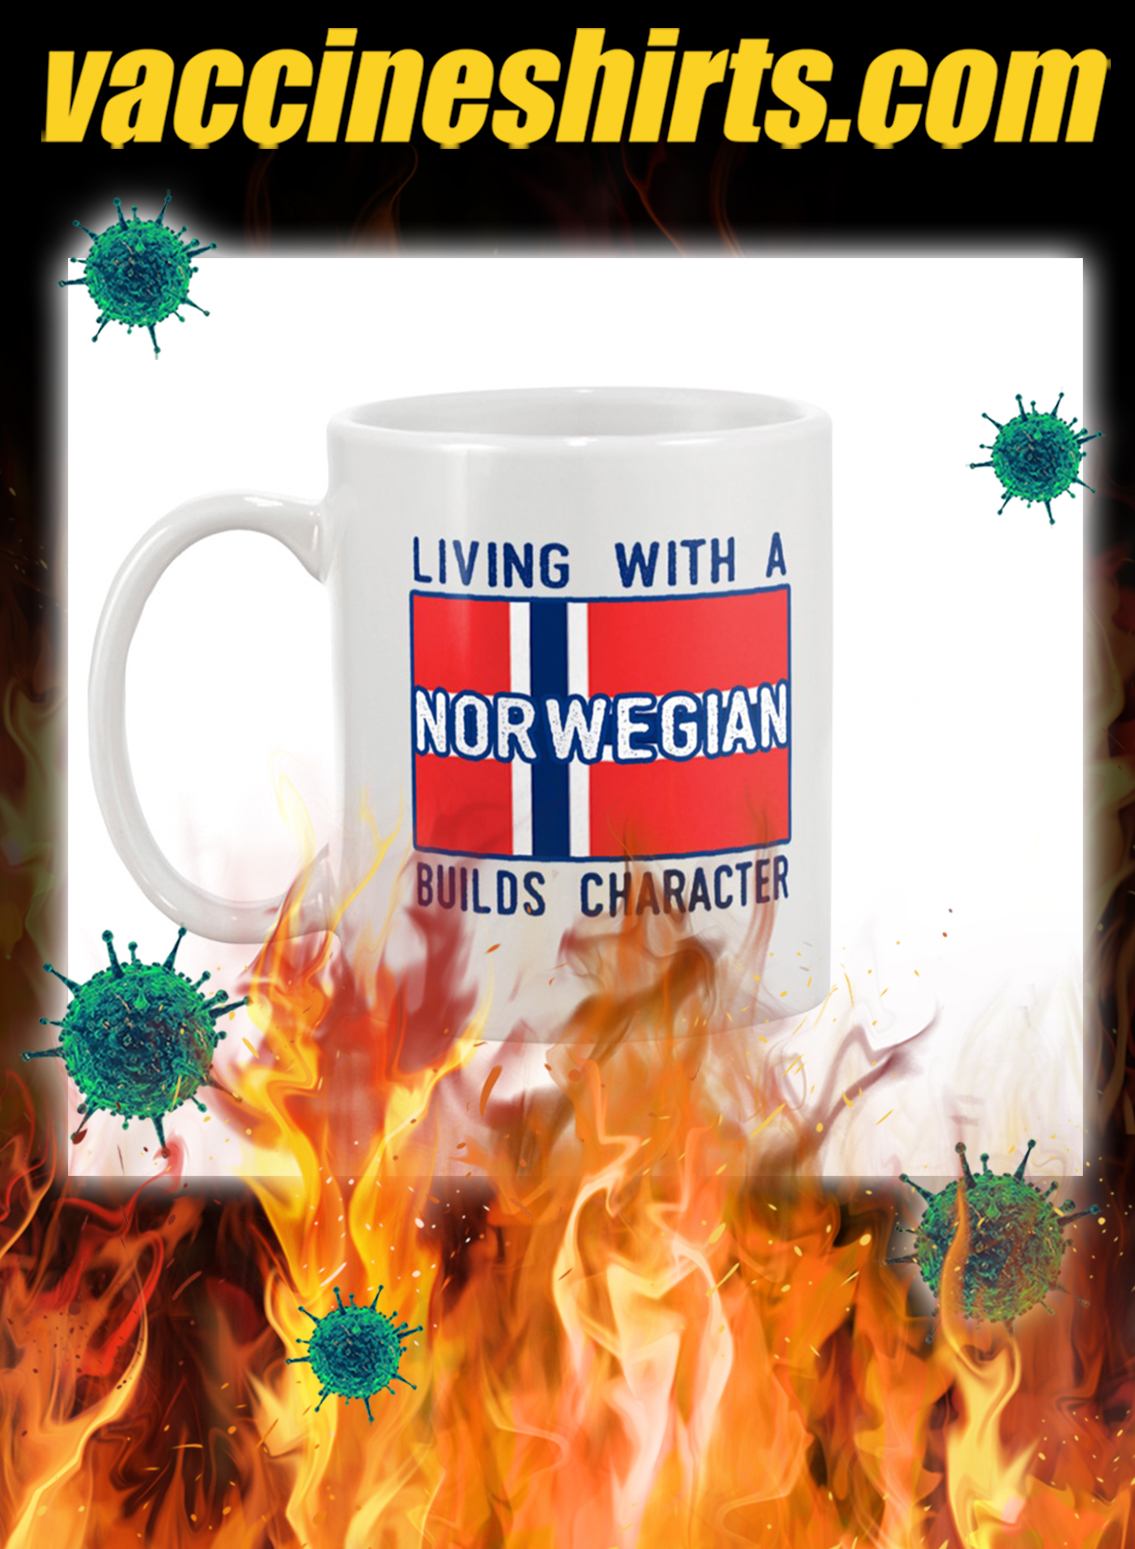 Living with a norwegian builds character mug- pic 1